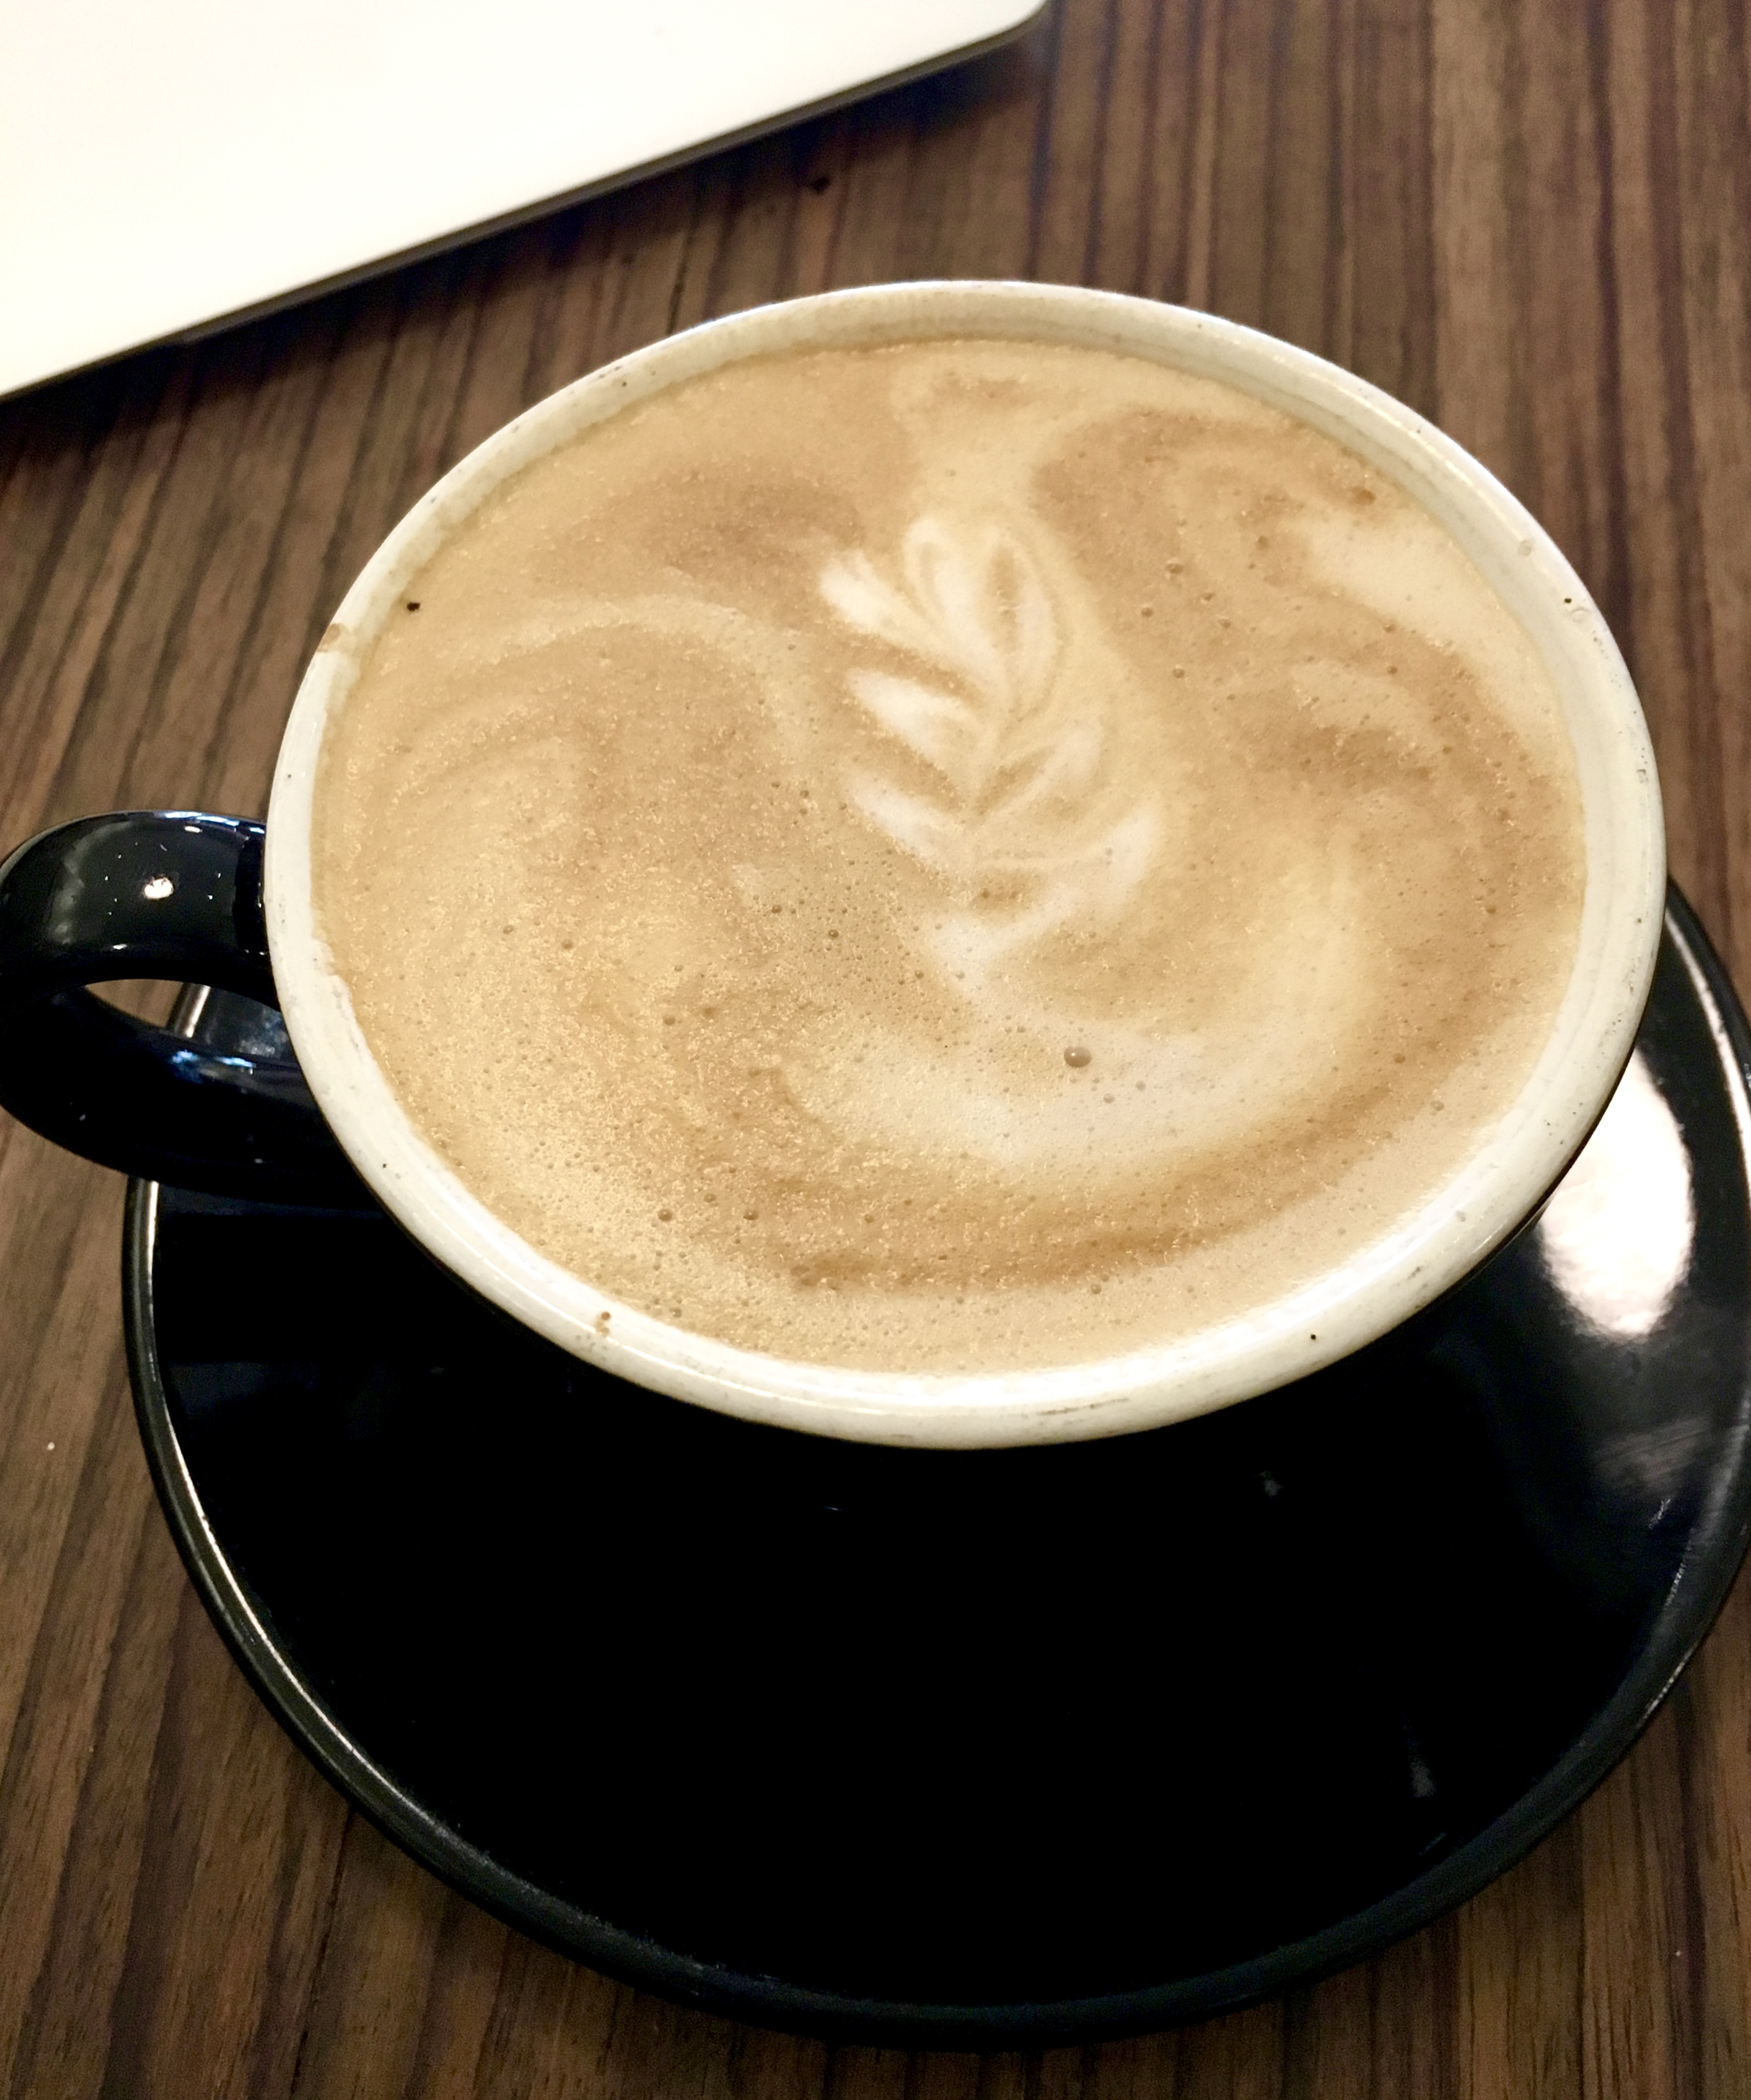 My Morning Cuppa: To coffee or not